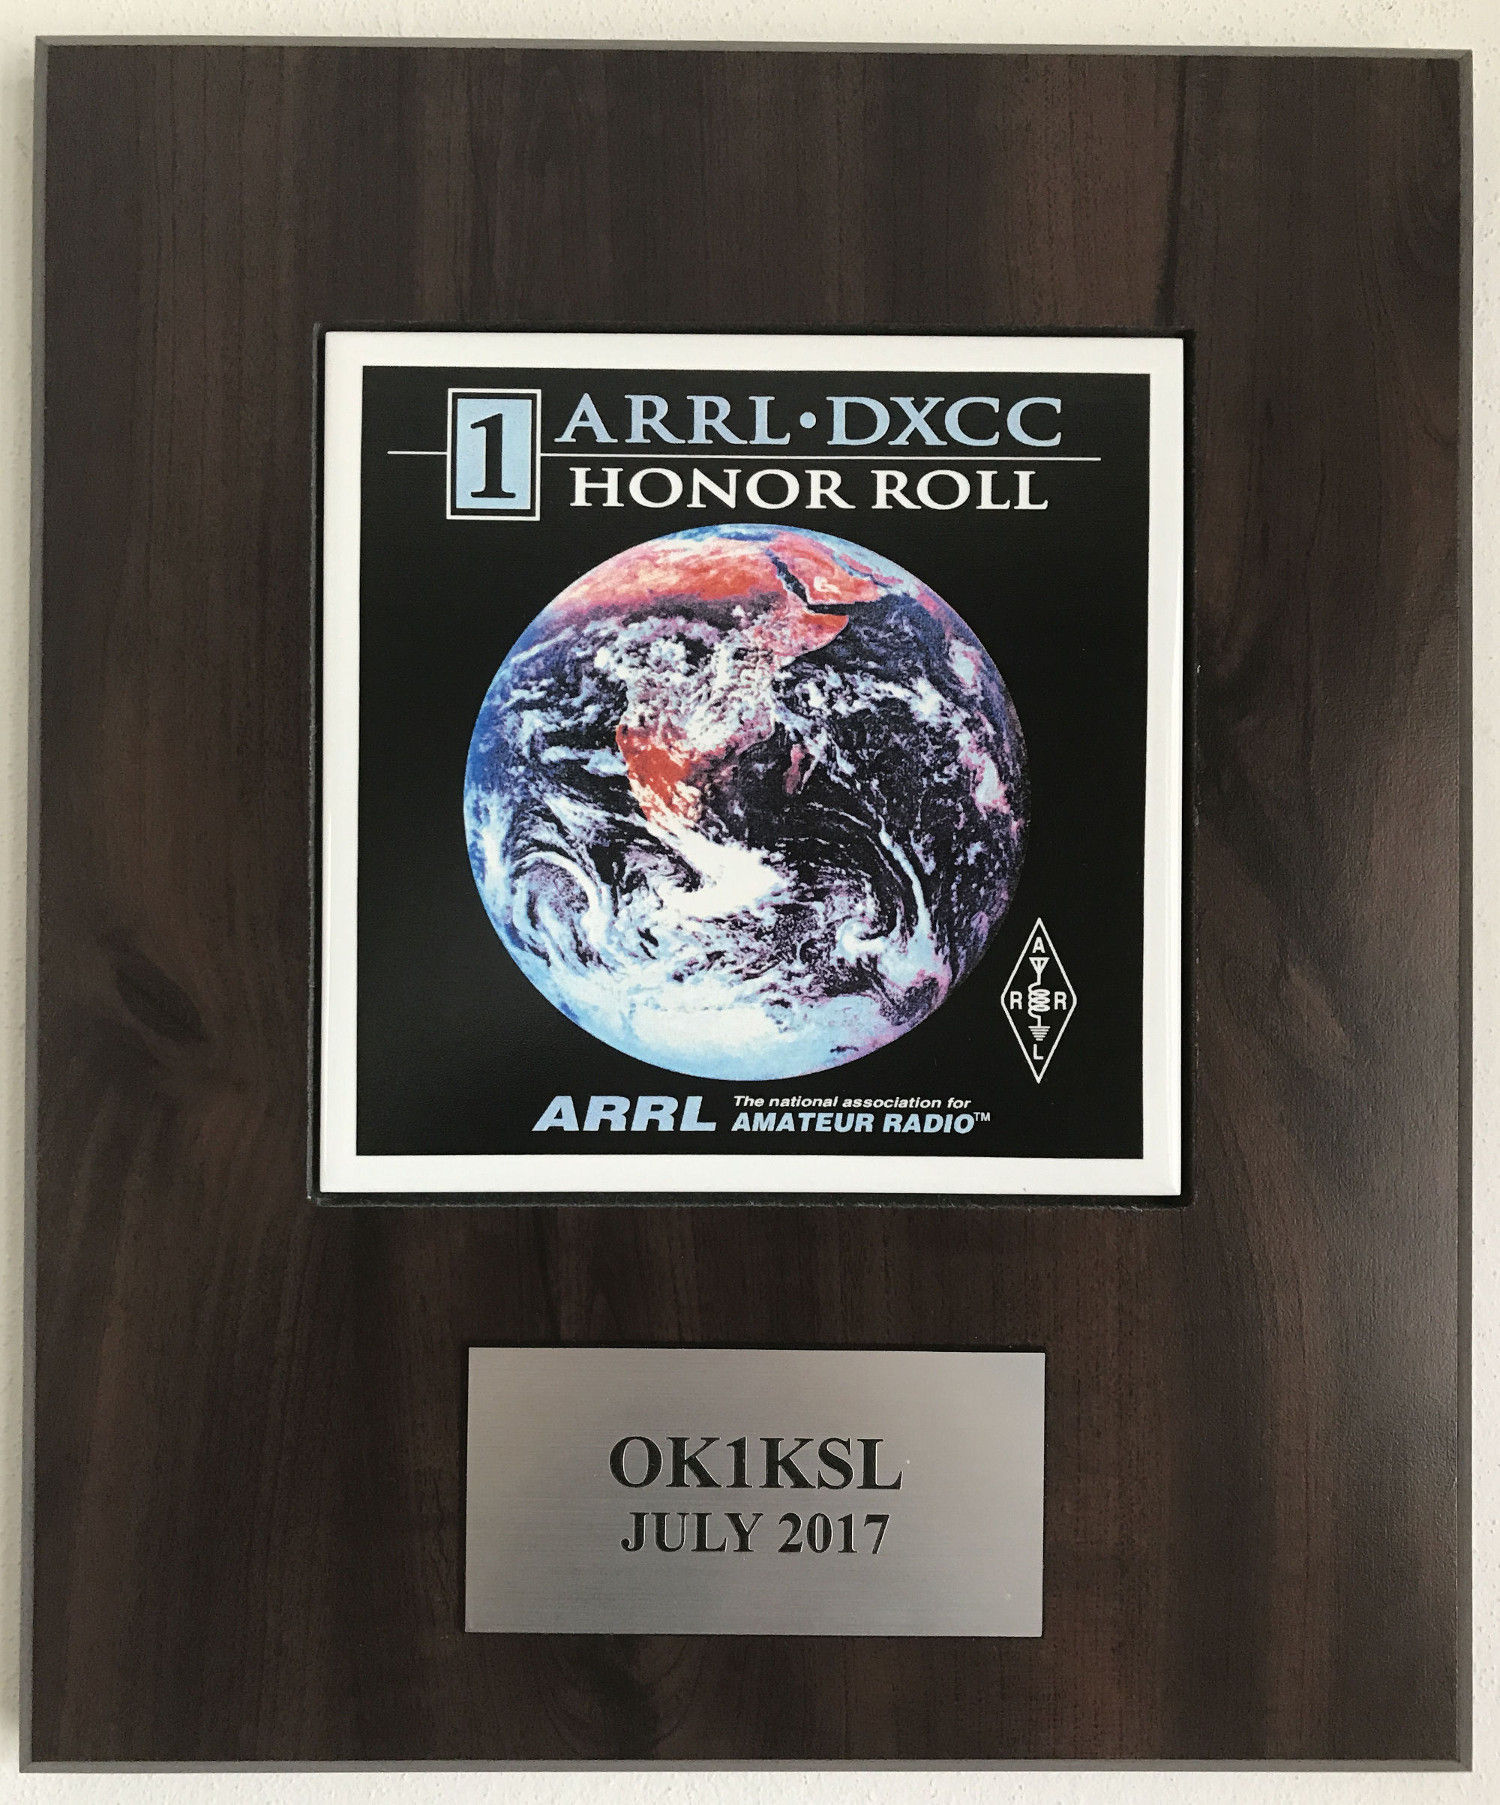 DXCC #1 Honor Roll plaque